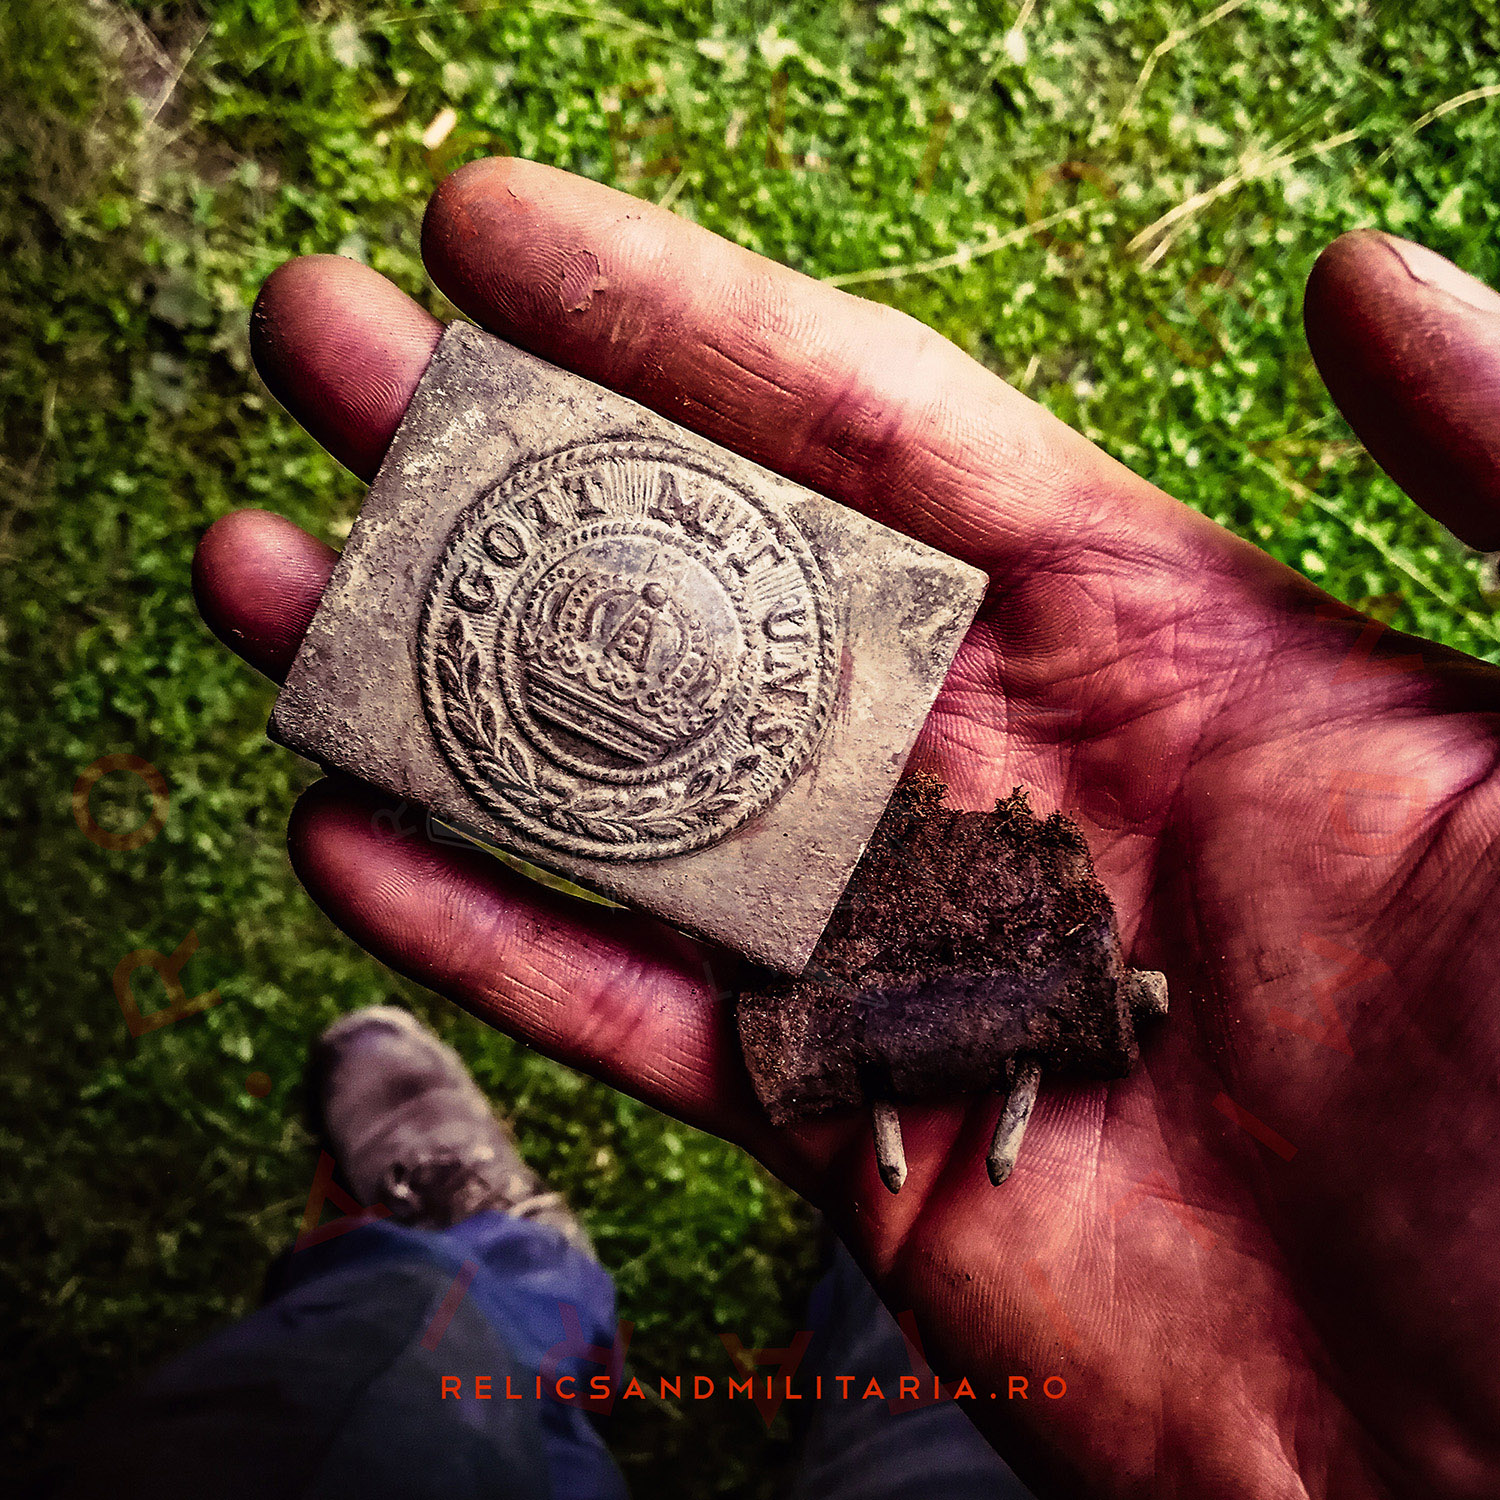 German Prusac ww1 Gott mit uns belt buckle relic found in Romania while metal detecting